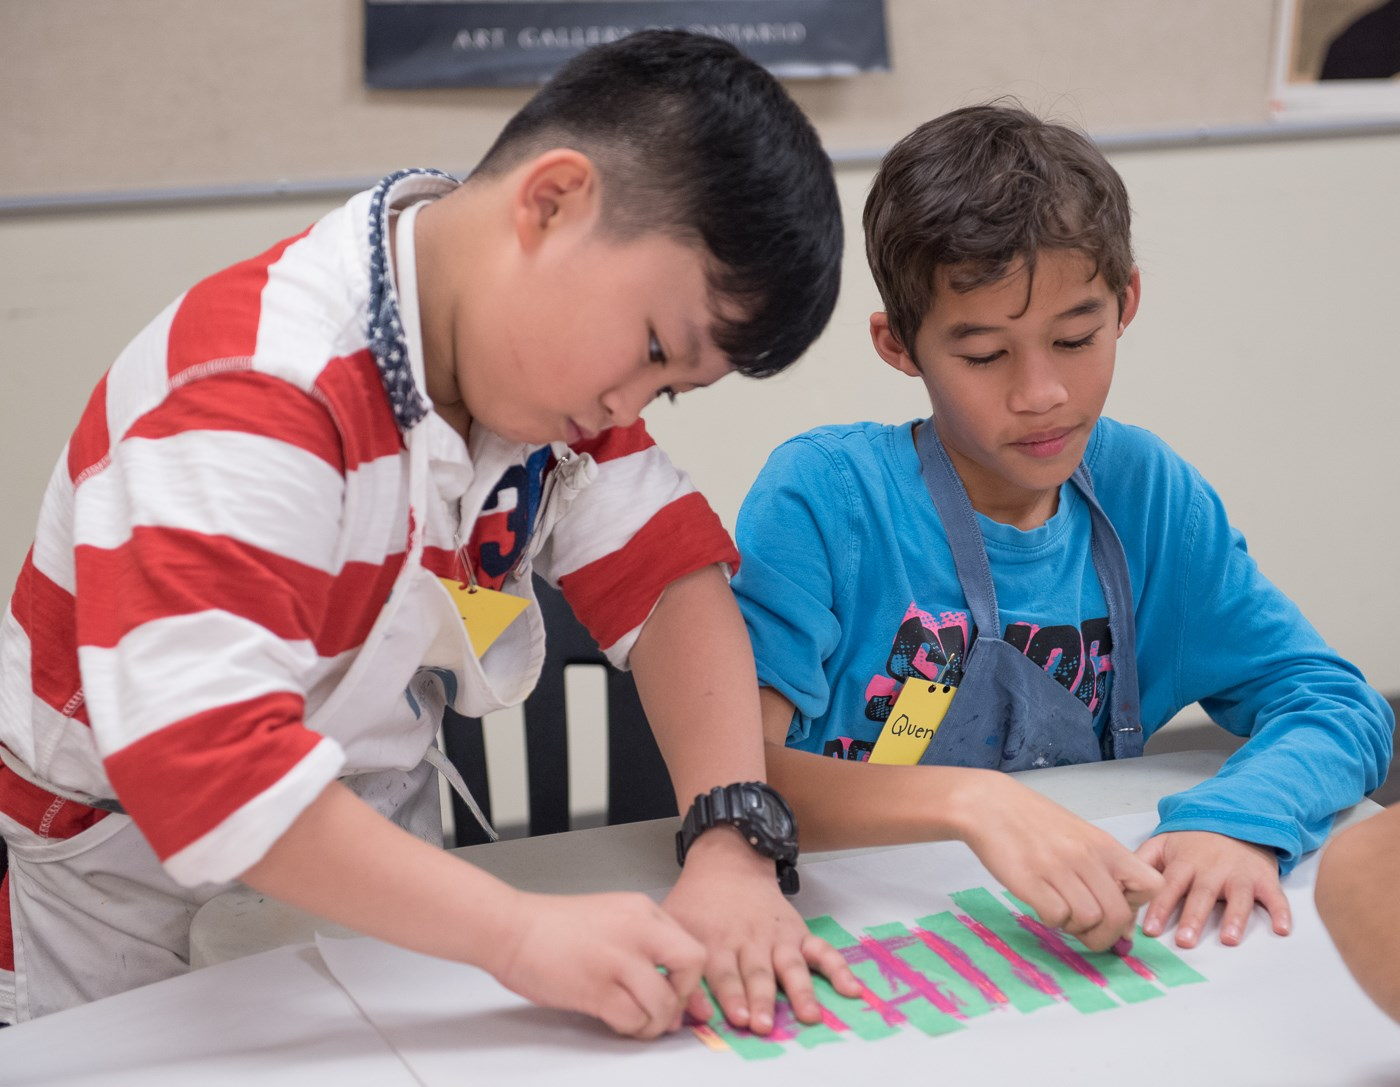 Registration for Fall After School Art Classes now open!